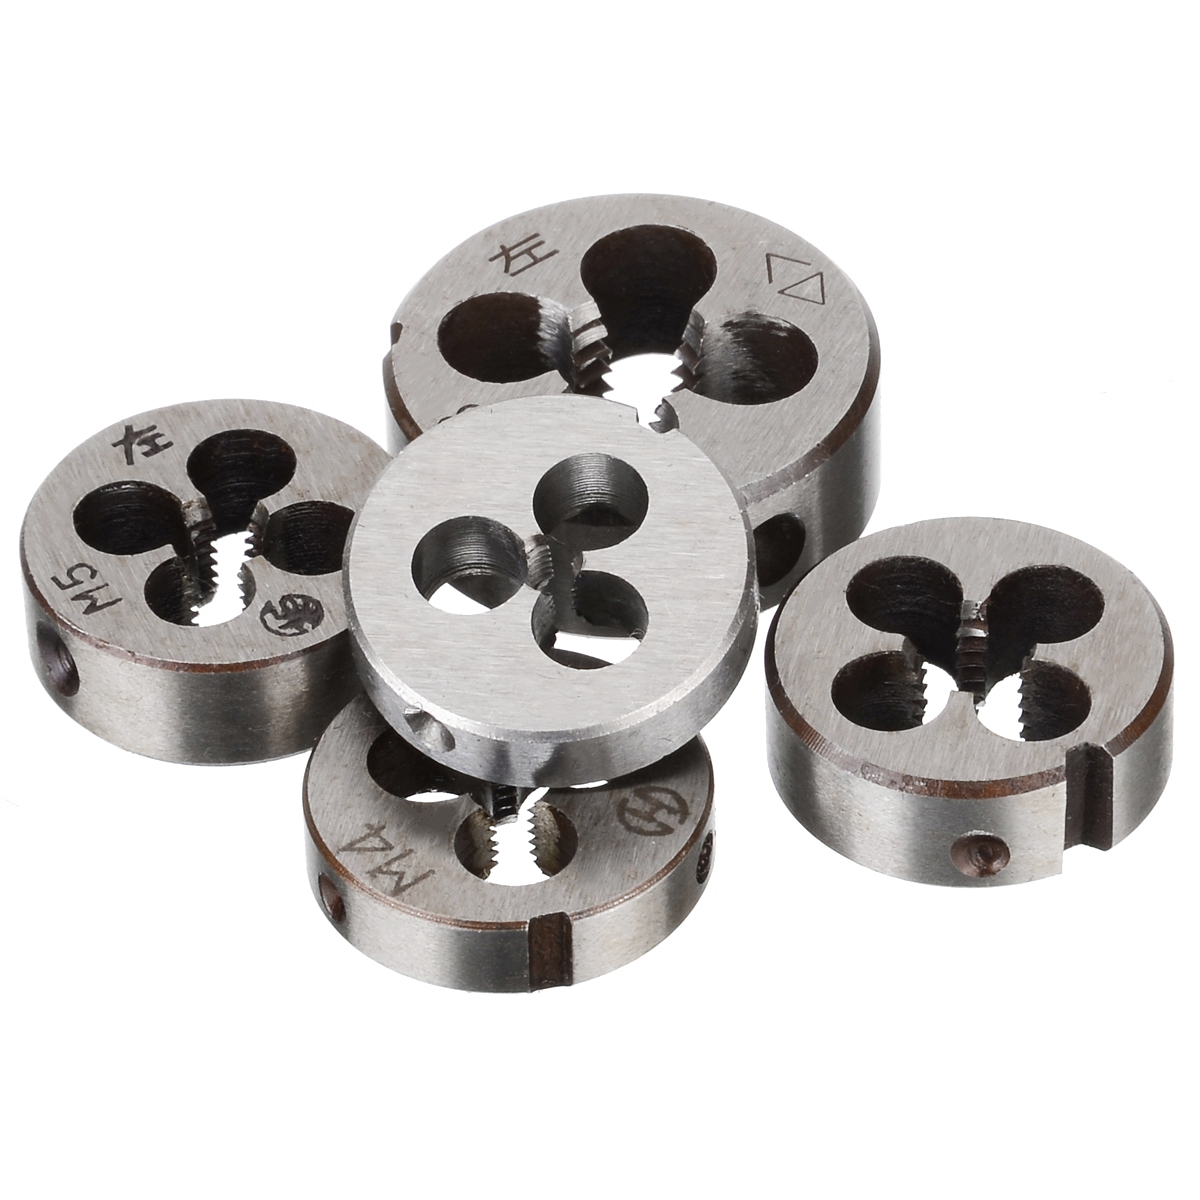 5pcs High Hardness Metric Threading Die Alloy Steel Left-hand Thread Cutting Tool Set M3 M4 M5 M6 M8 for Mold Machining5pcs High Hardness Metric Threading Die Alloy Steel Left-hand Thread Cutting Tool Set M3 M4 M5 M6 M8 for Mold Machining